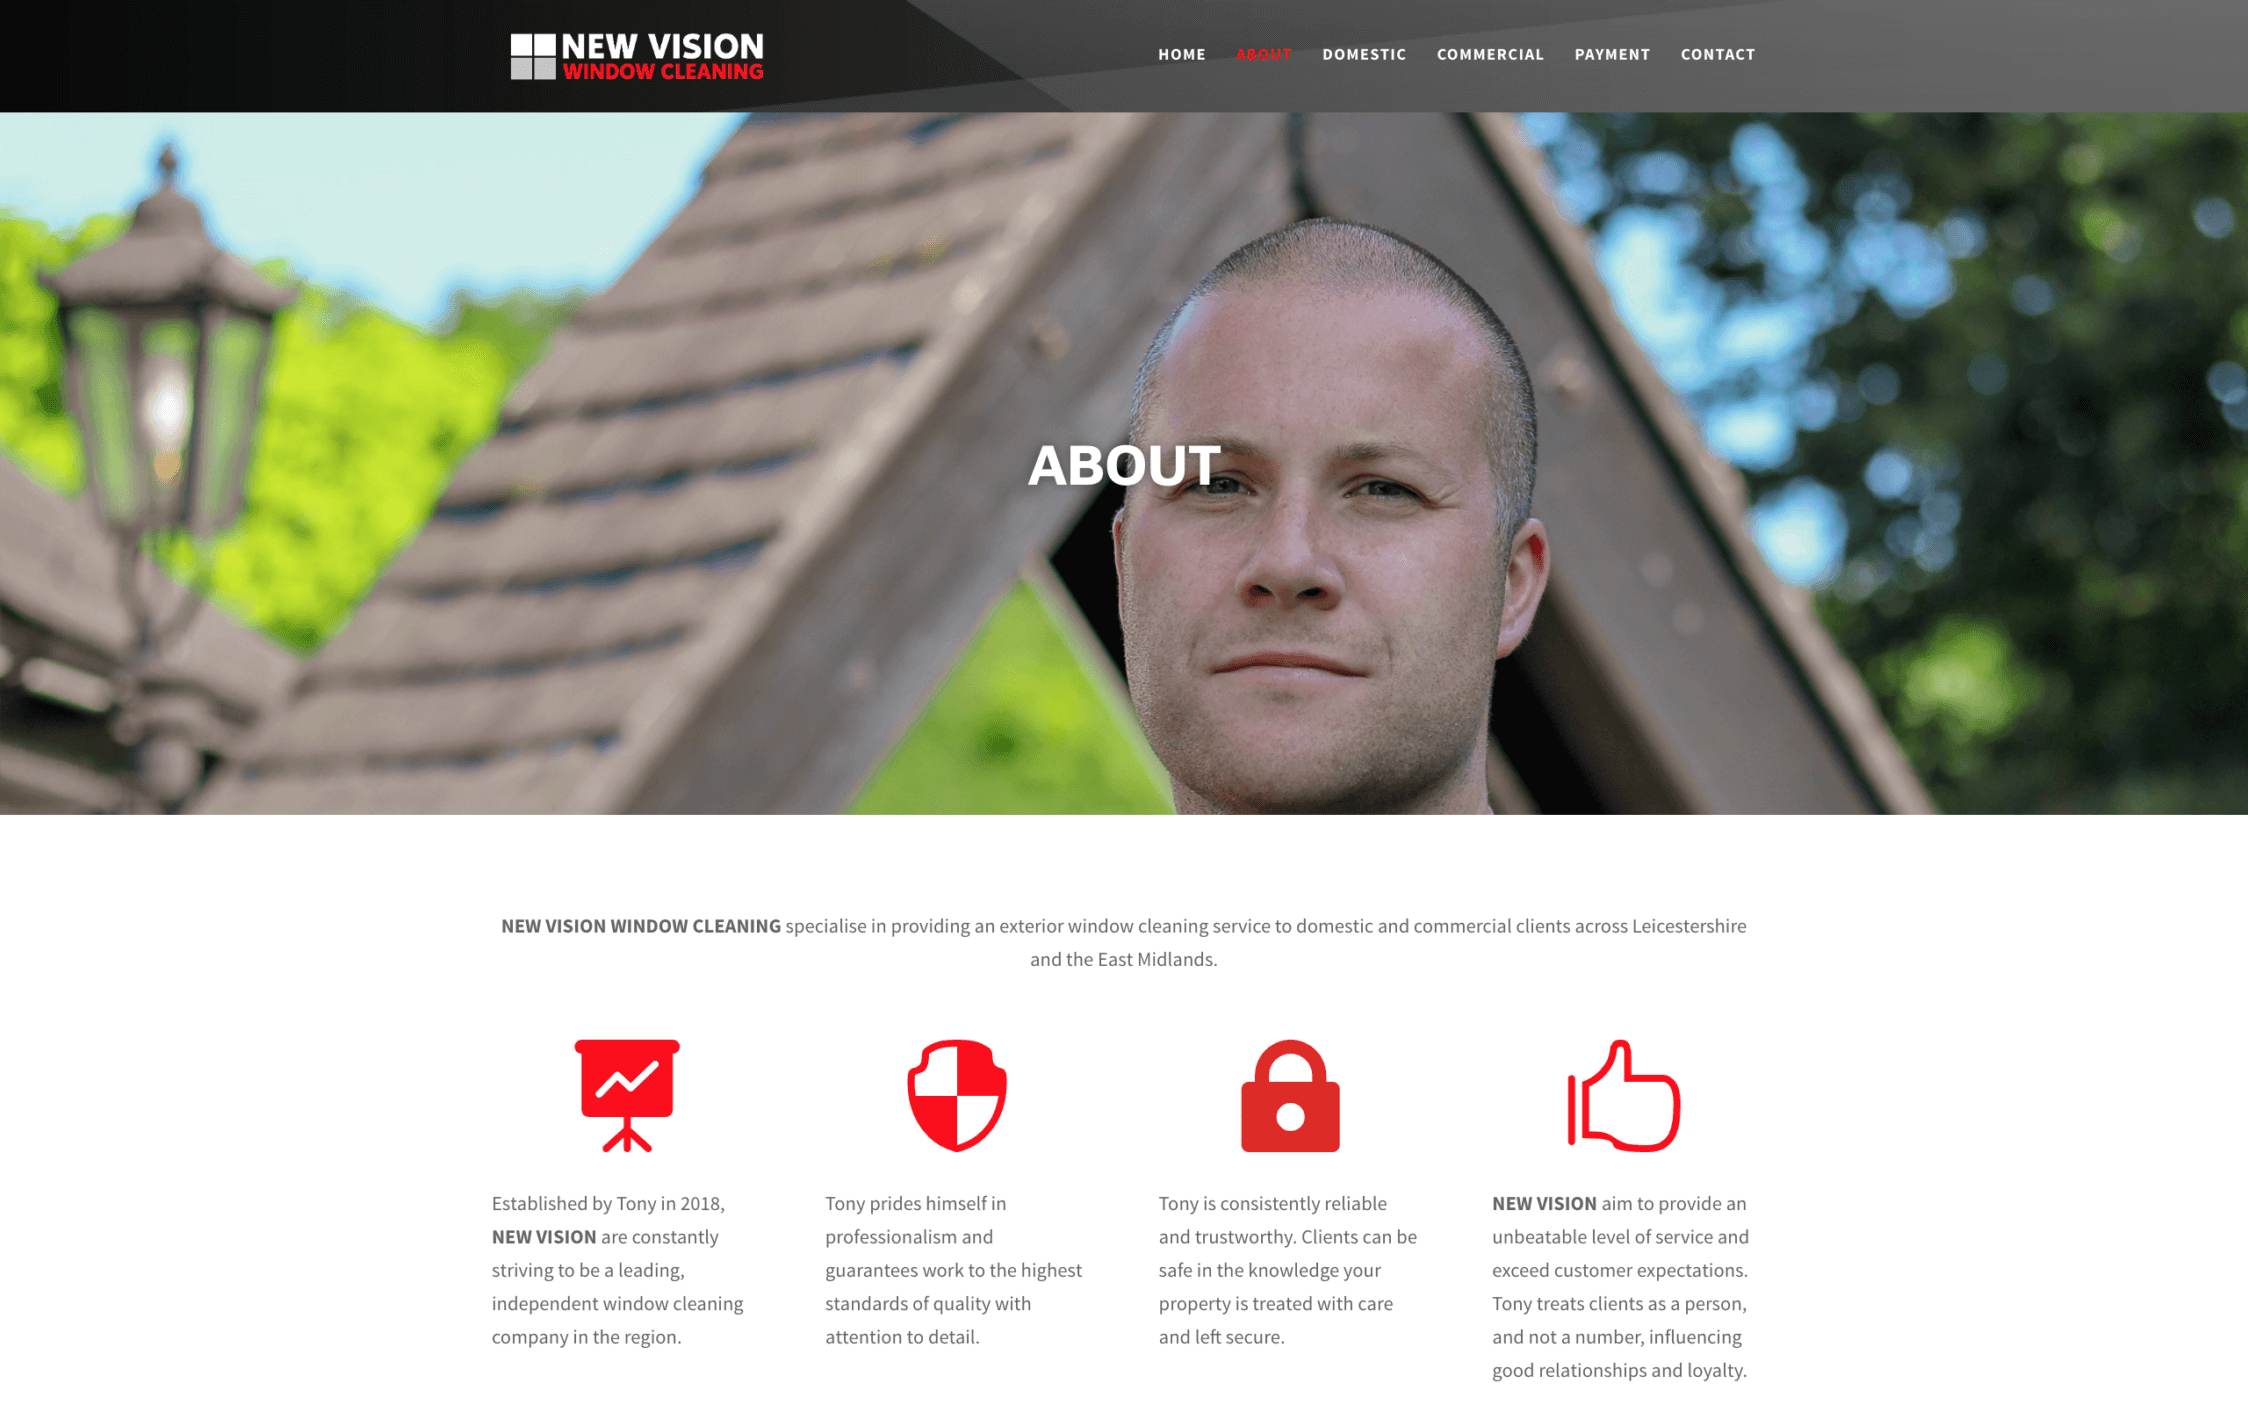 New Vision Window Cleaning Screenshotat 11.47.39 2 - Website design for window cleaning business